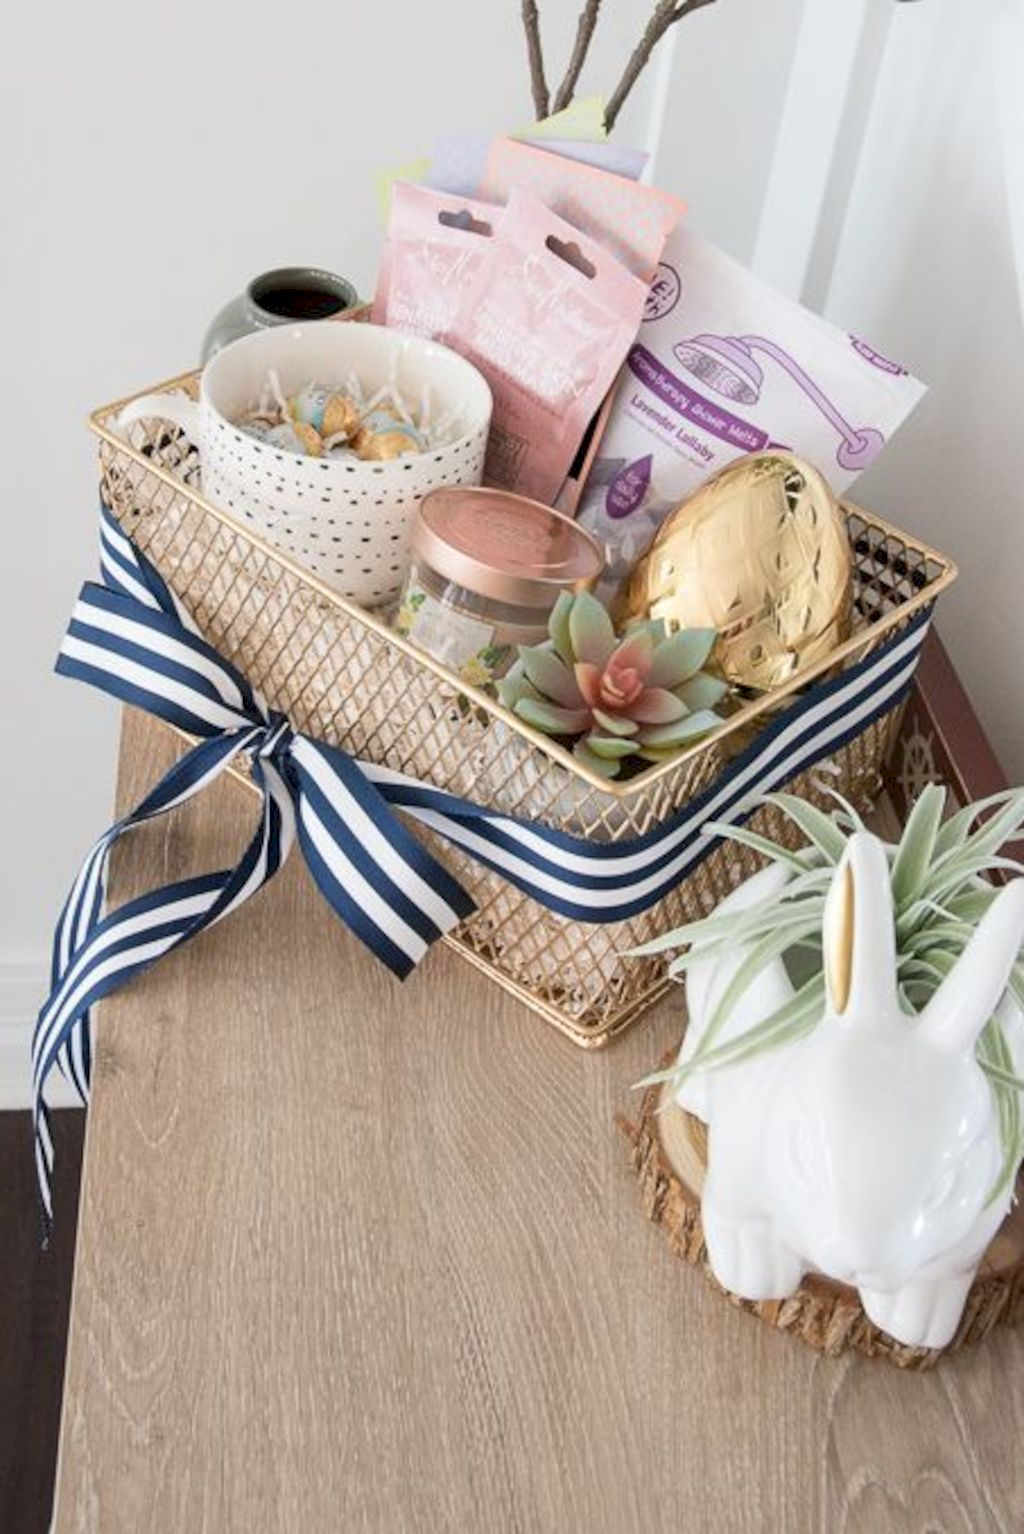 Easter basket ideas arranged with chic decoration ideal and affordable for Spring celebration Image 41